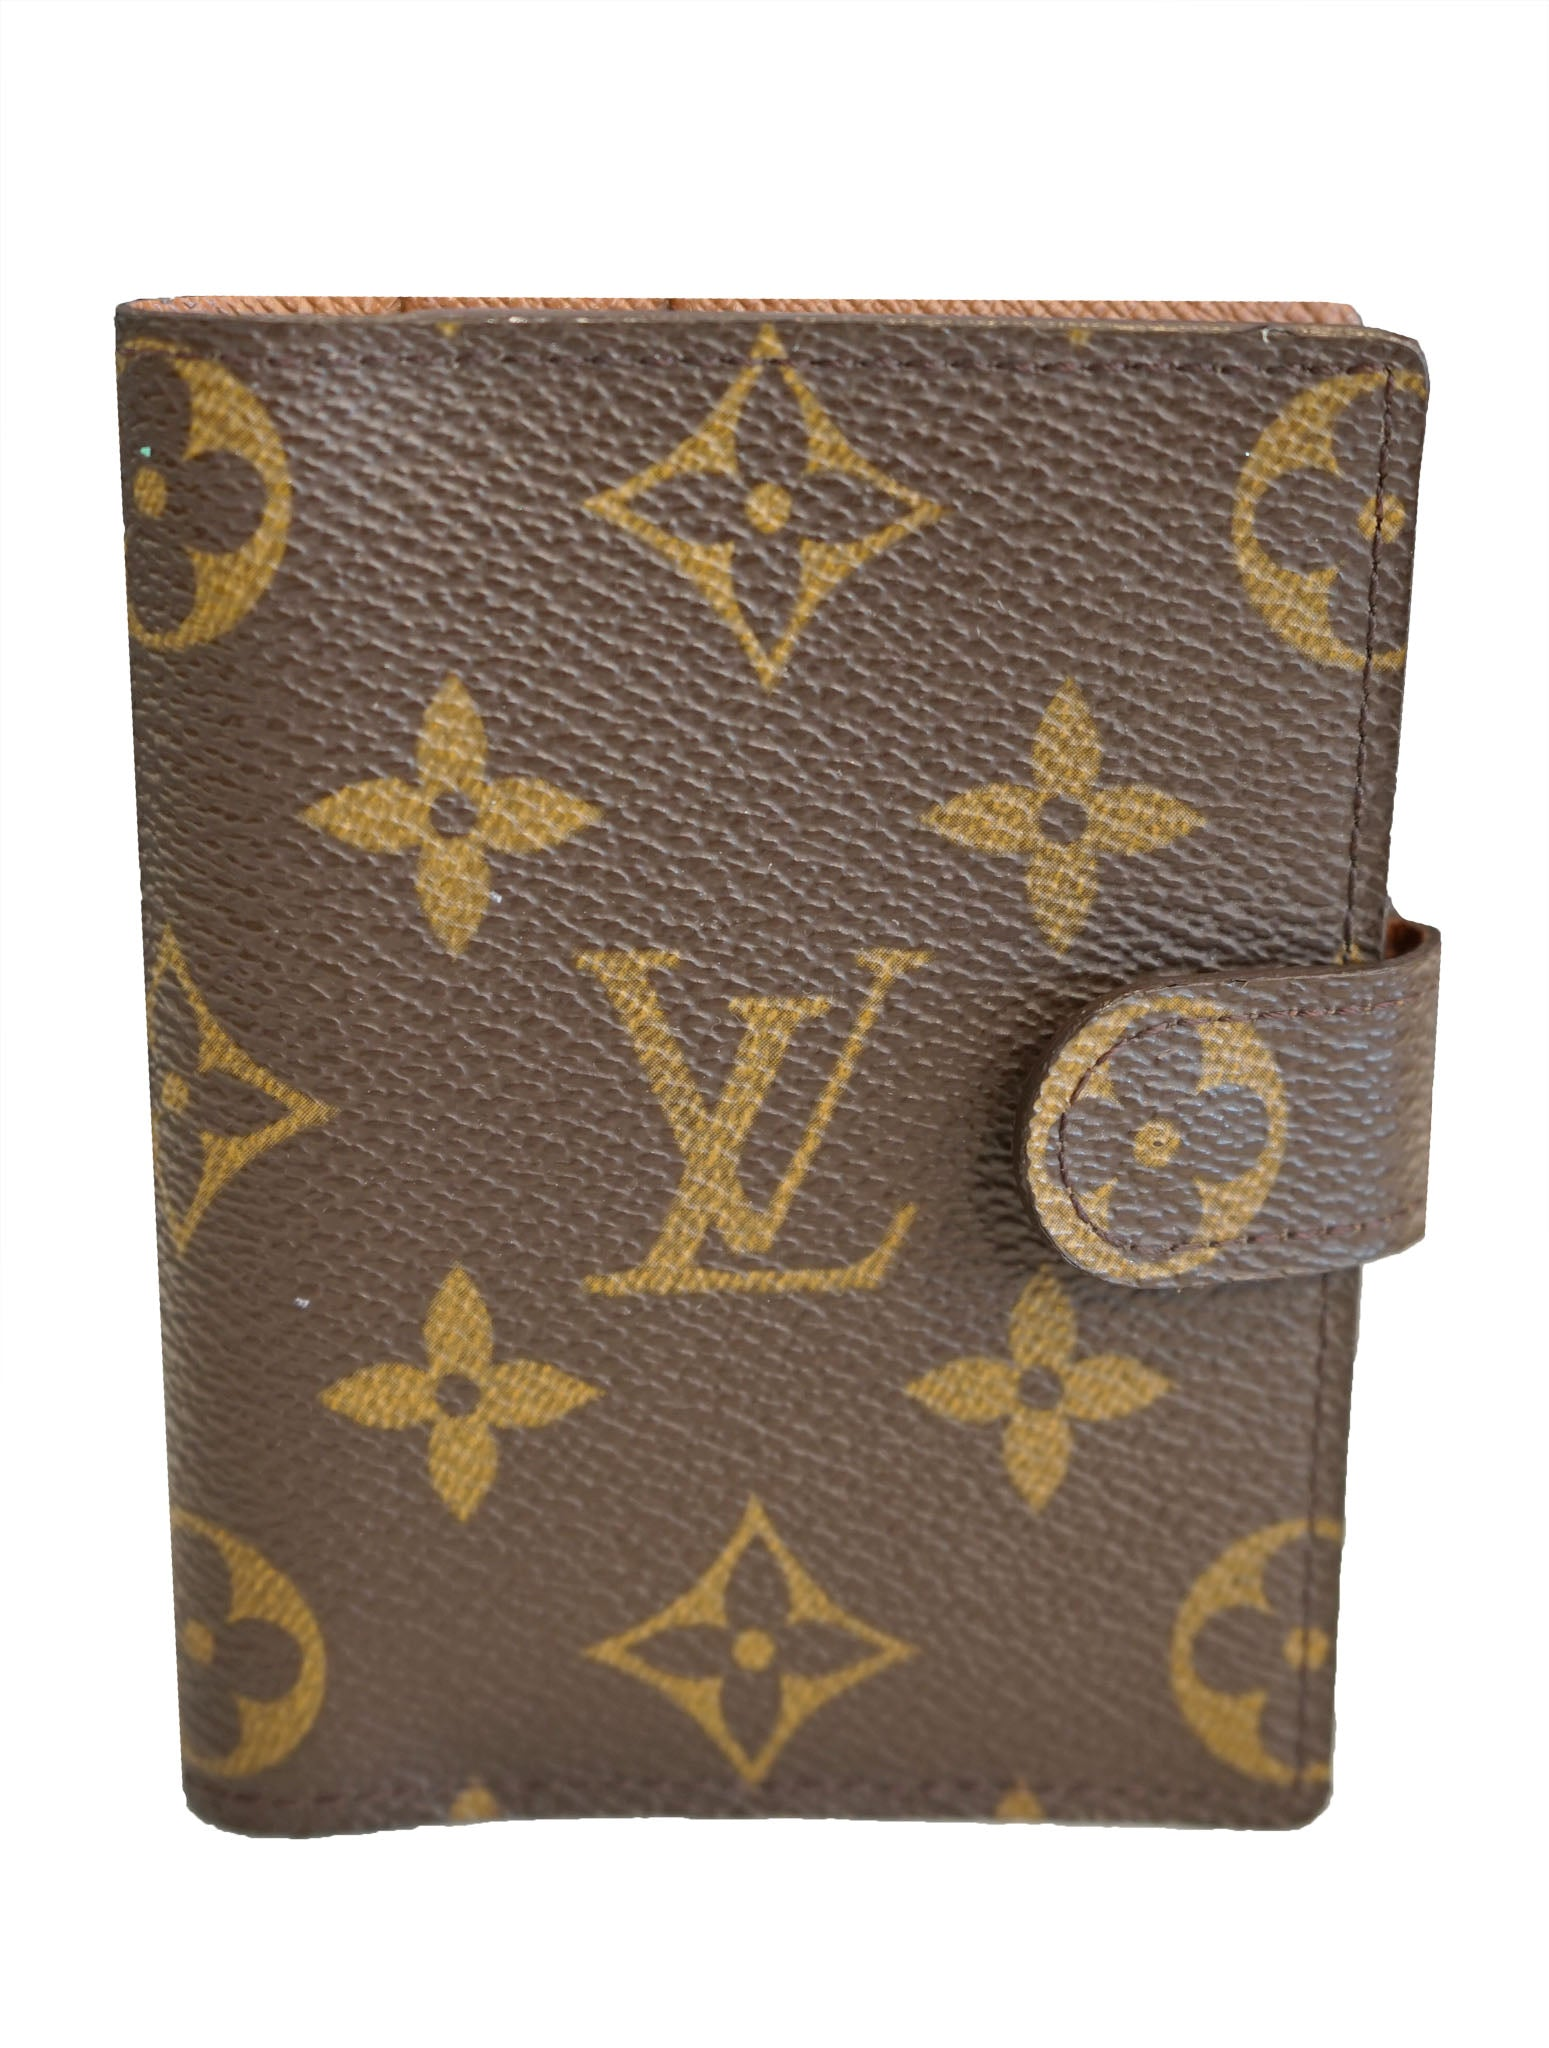 MONOGRAM CANVAS BUSINESS CARD HOLDER